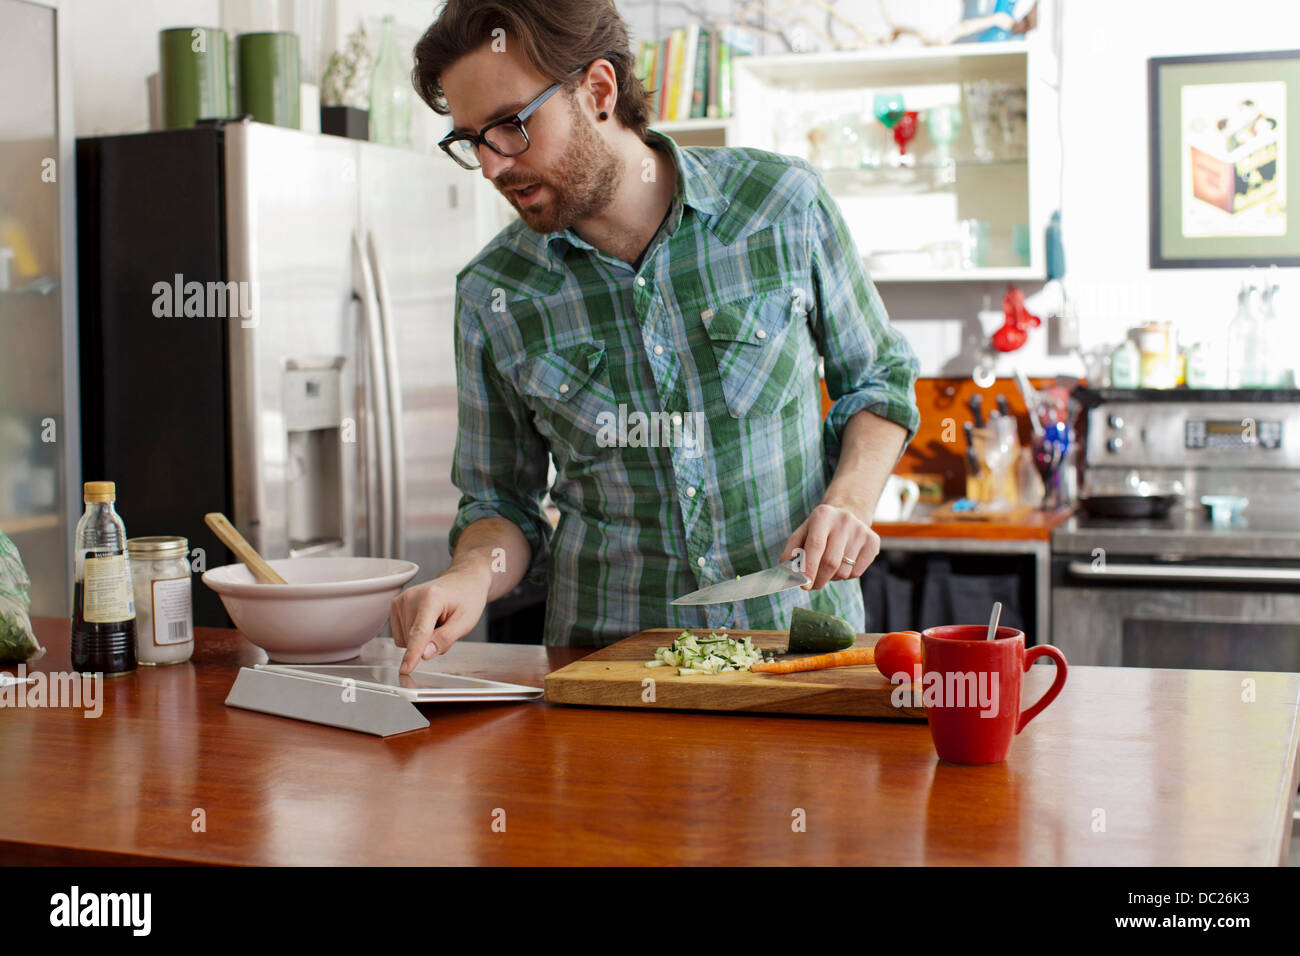 Man chopping vegetables Photo Stock